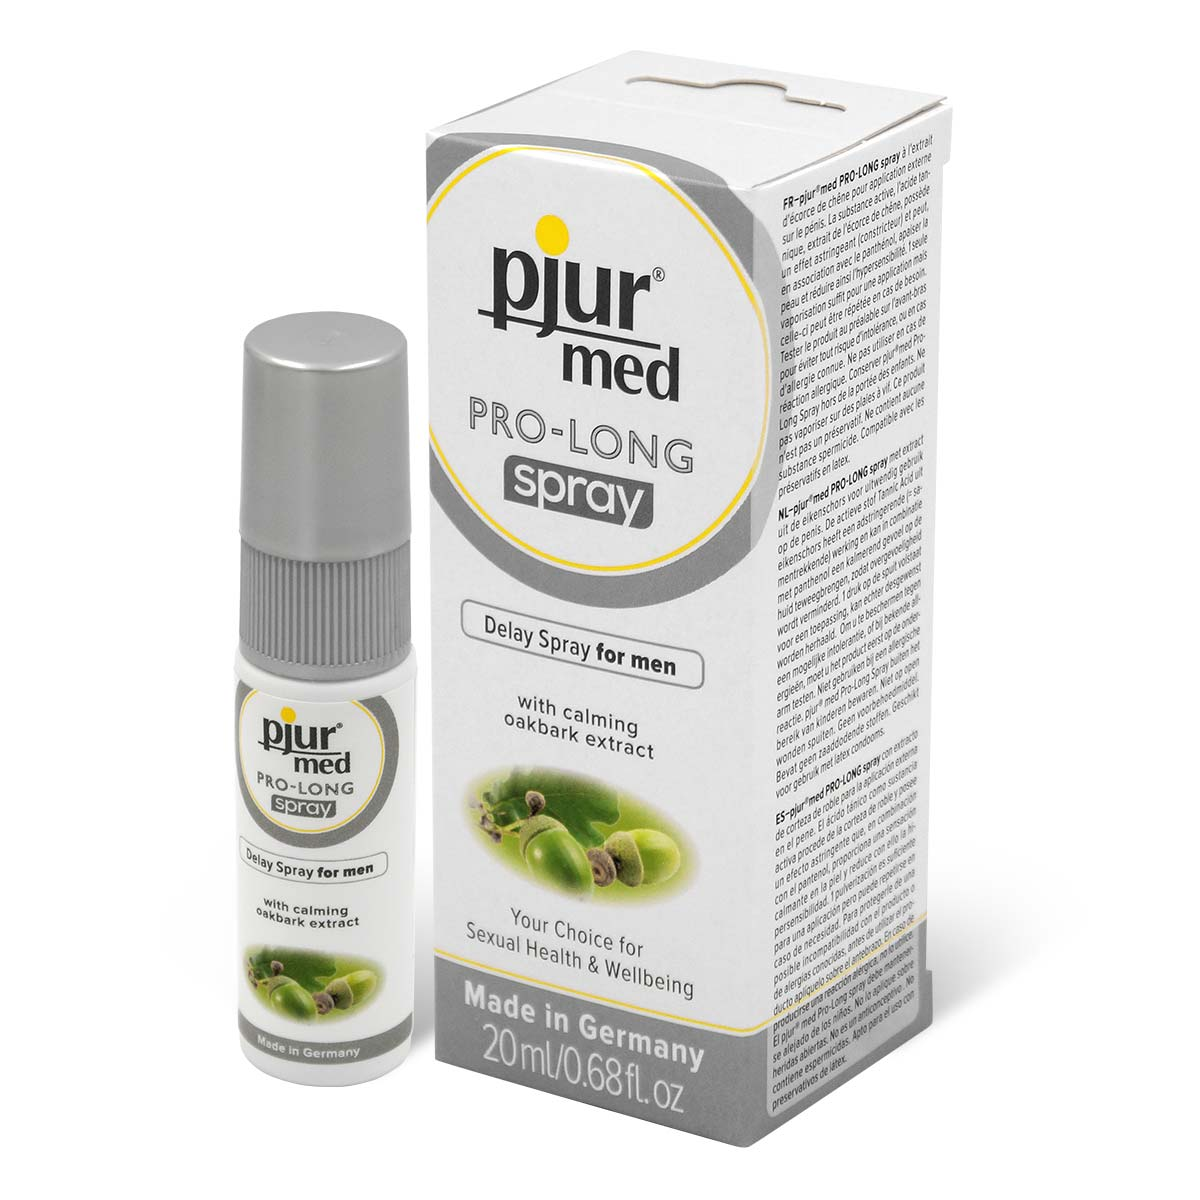 pjur med PRO-LONG spray 20ml